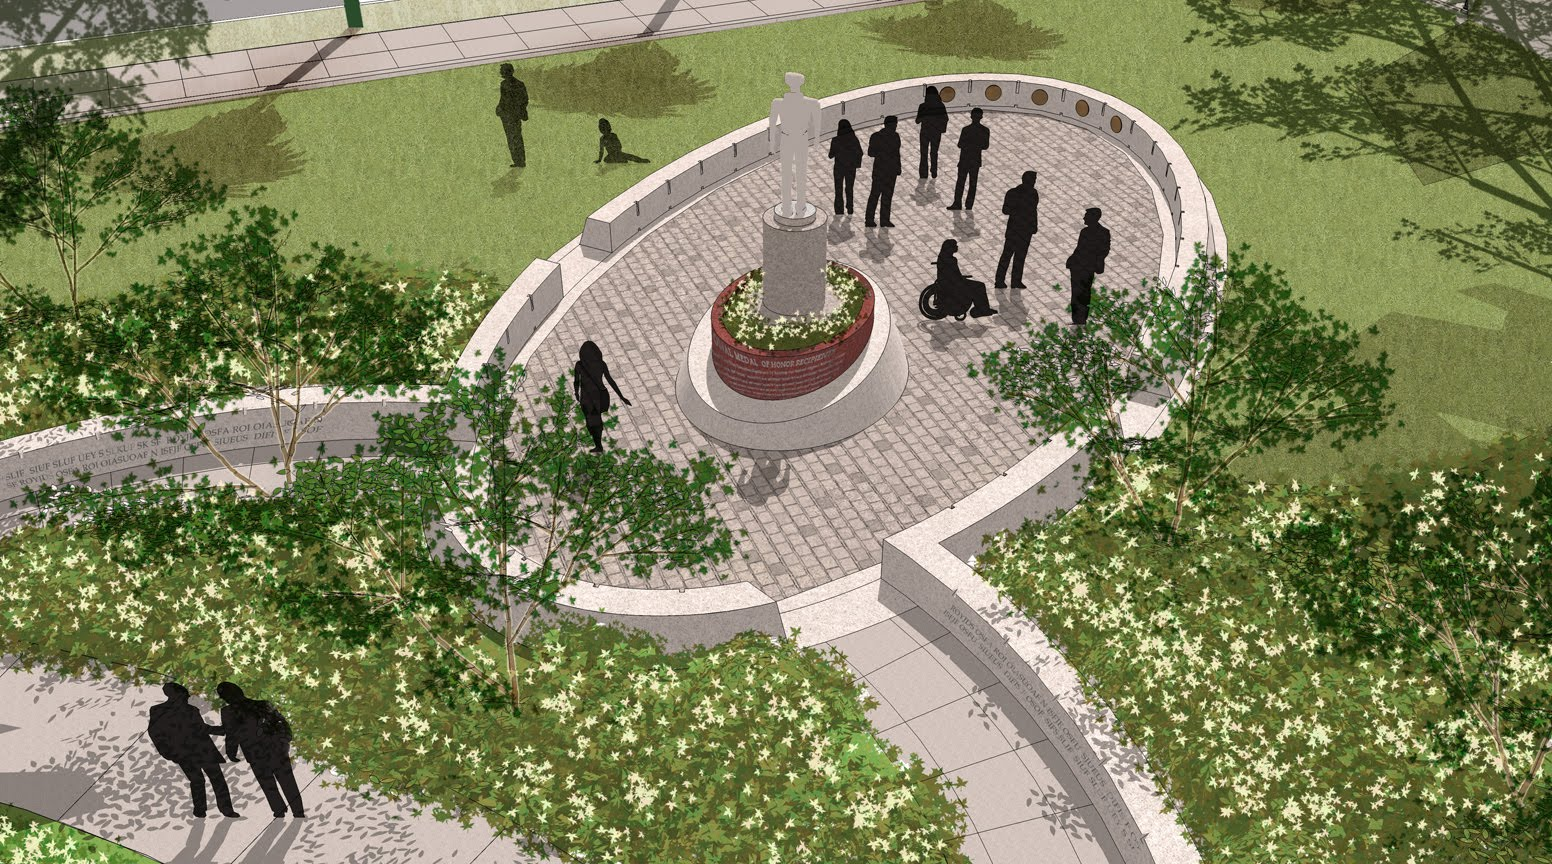 Design firm Quadriga's rendering of the final memorial plaza. Funds are still being raised for the surrounding gardens.